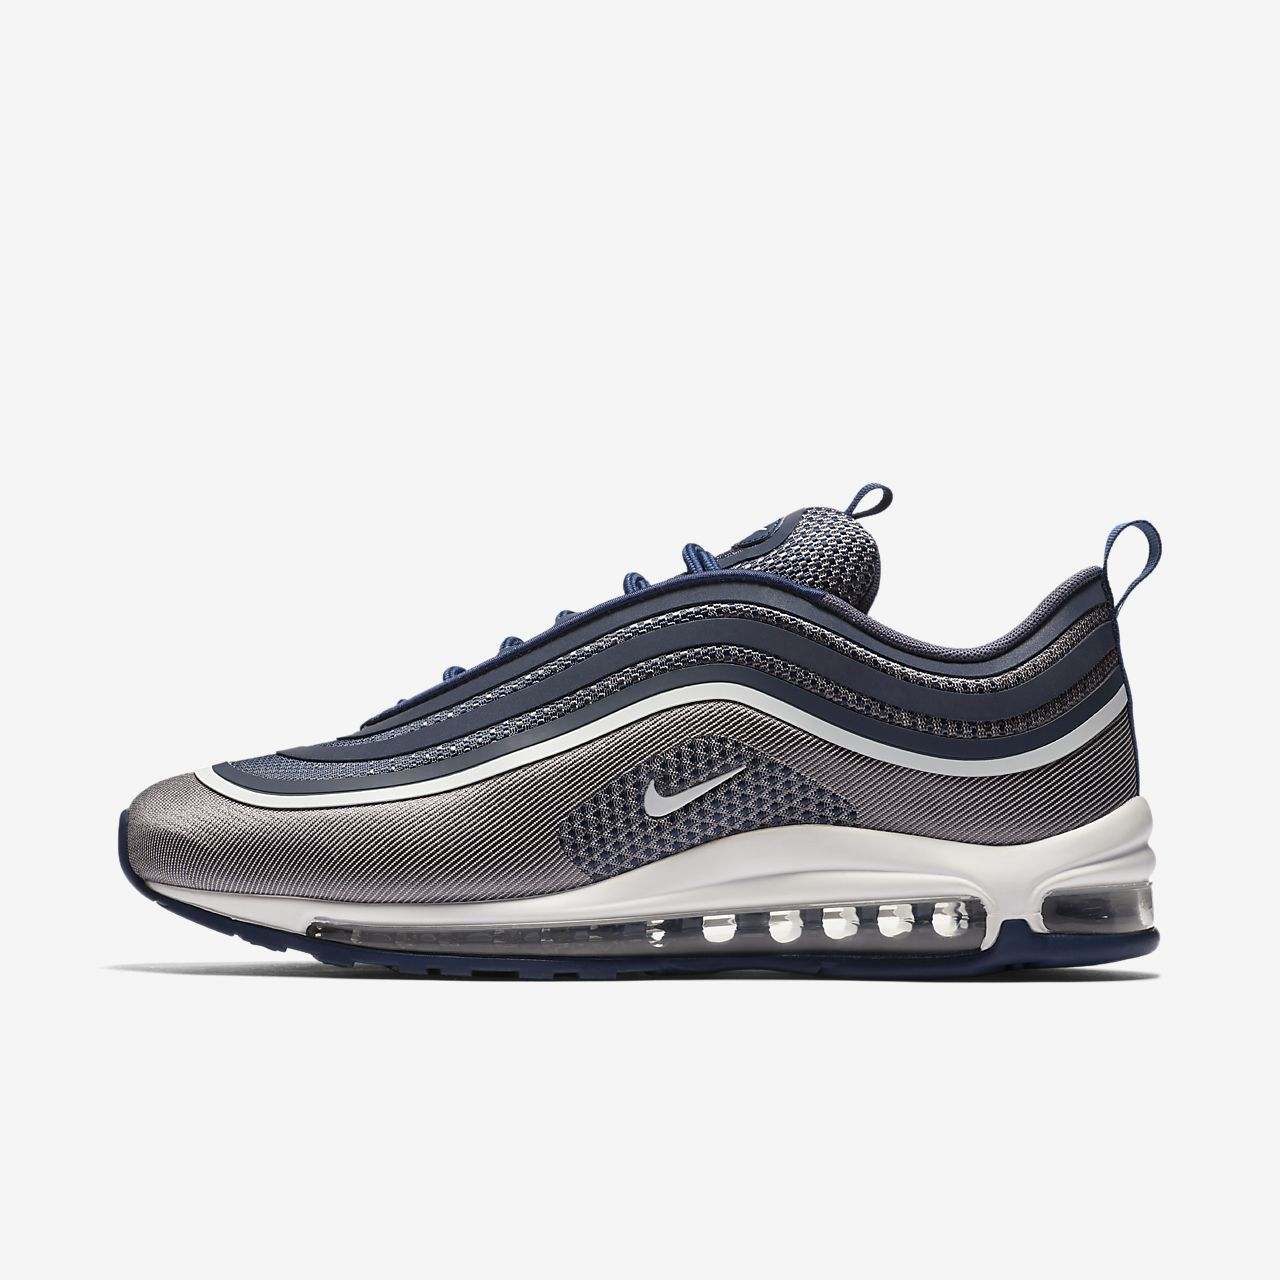 Nike Air Max 97 Men's Running Shoes Thunder